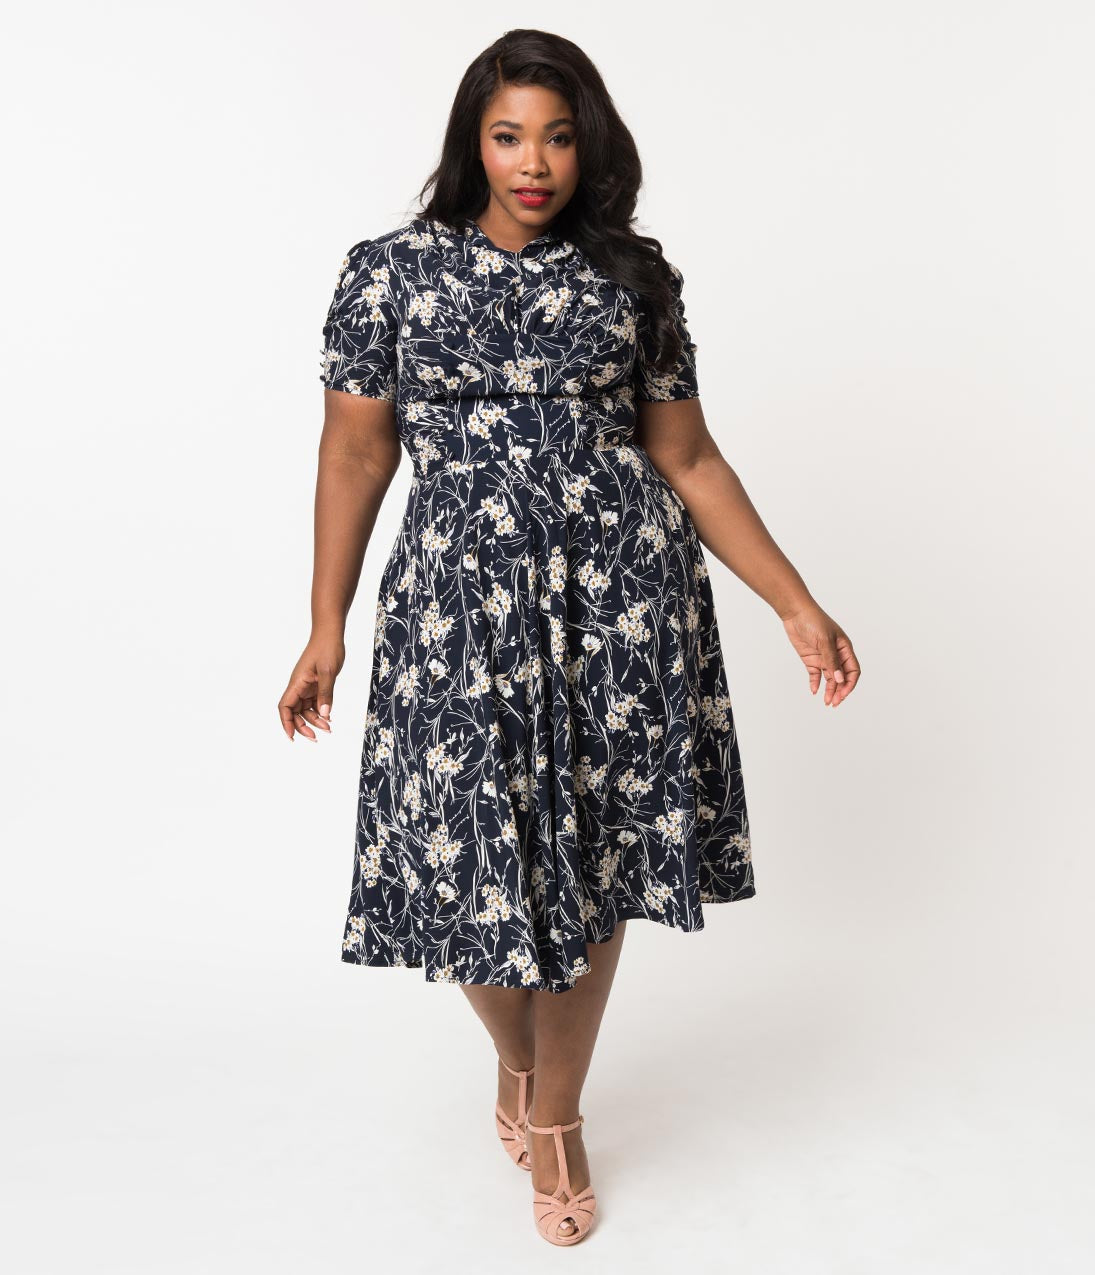 1940s Tea Dresses, Mature, Mrs. Long Sleeve Dresses Unique Vintage Plus Size 1940S Style Navy  White Floral Camilla Midi Dress $56.00 AT vintagedancer.com